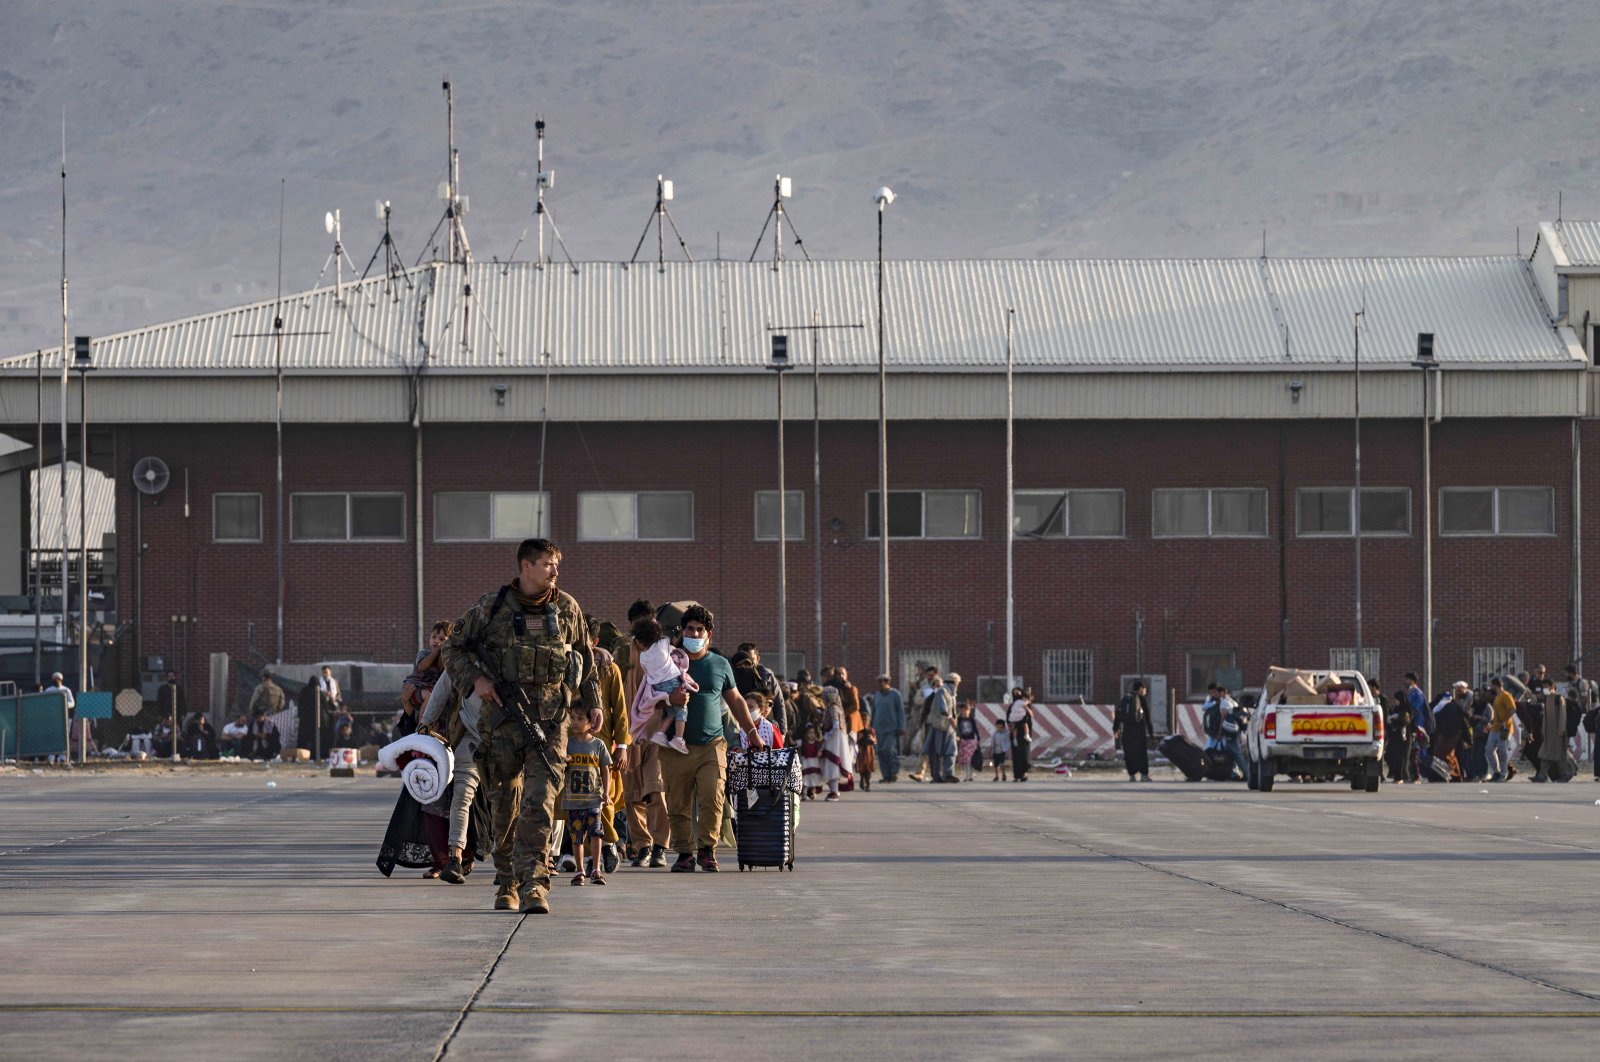 A U.S. Air Force officer guides evacuees to board a U.S. Air Force C-17 Globemaster III at Hamid Karzai International Airport in Kabul, Afghanistan, Aug. 24, 2021. (AP Photo)